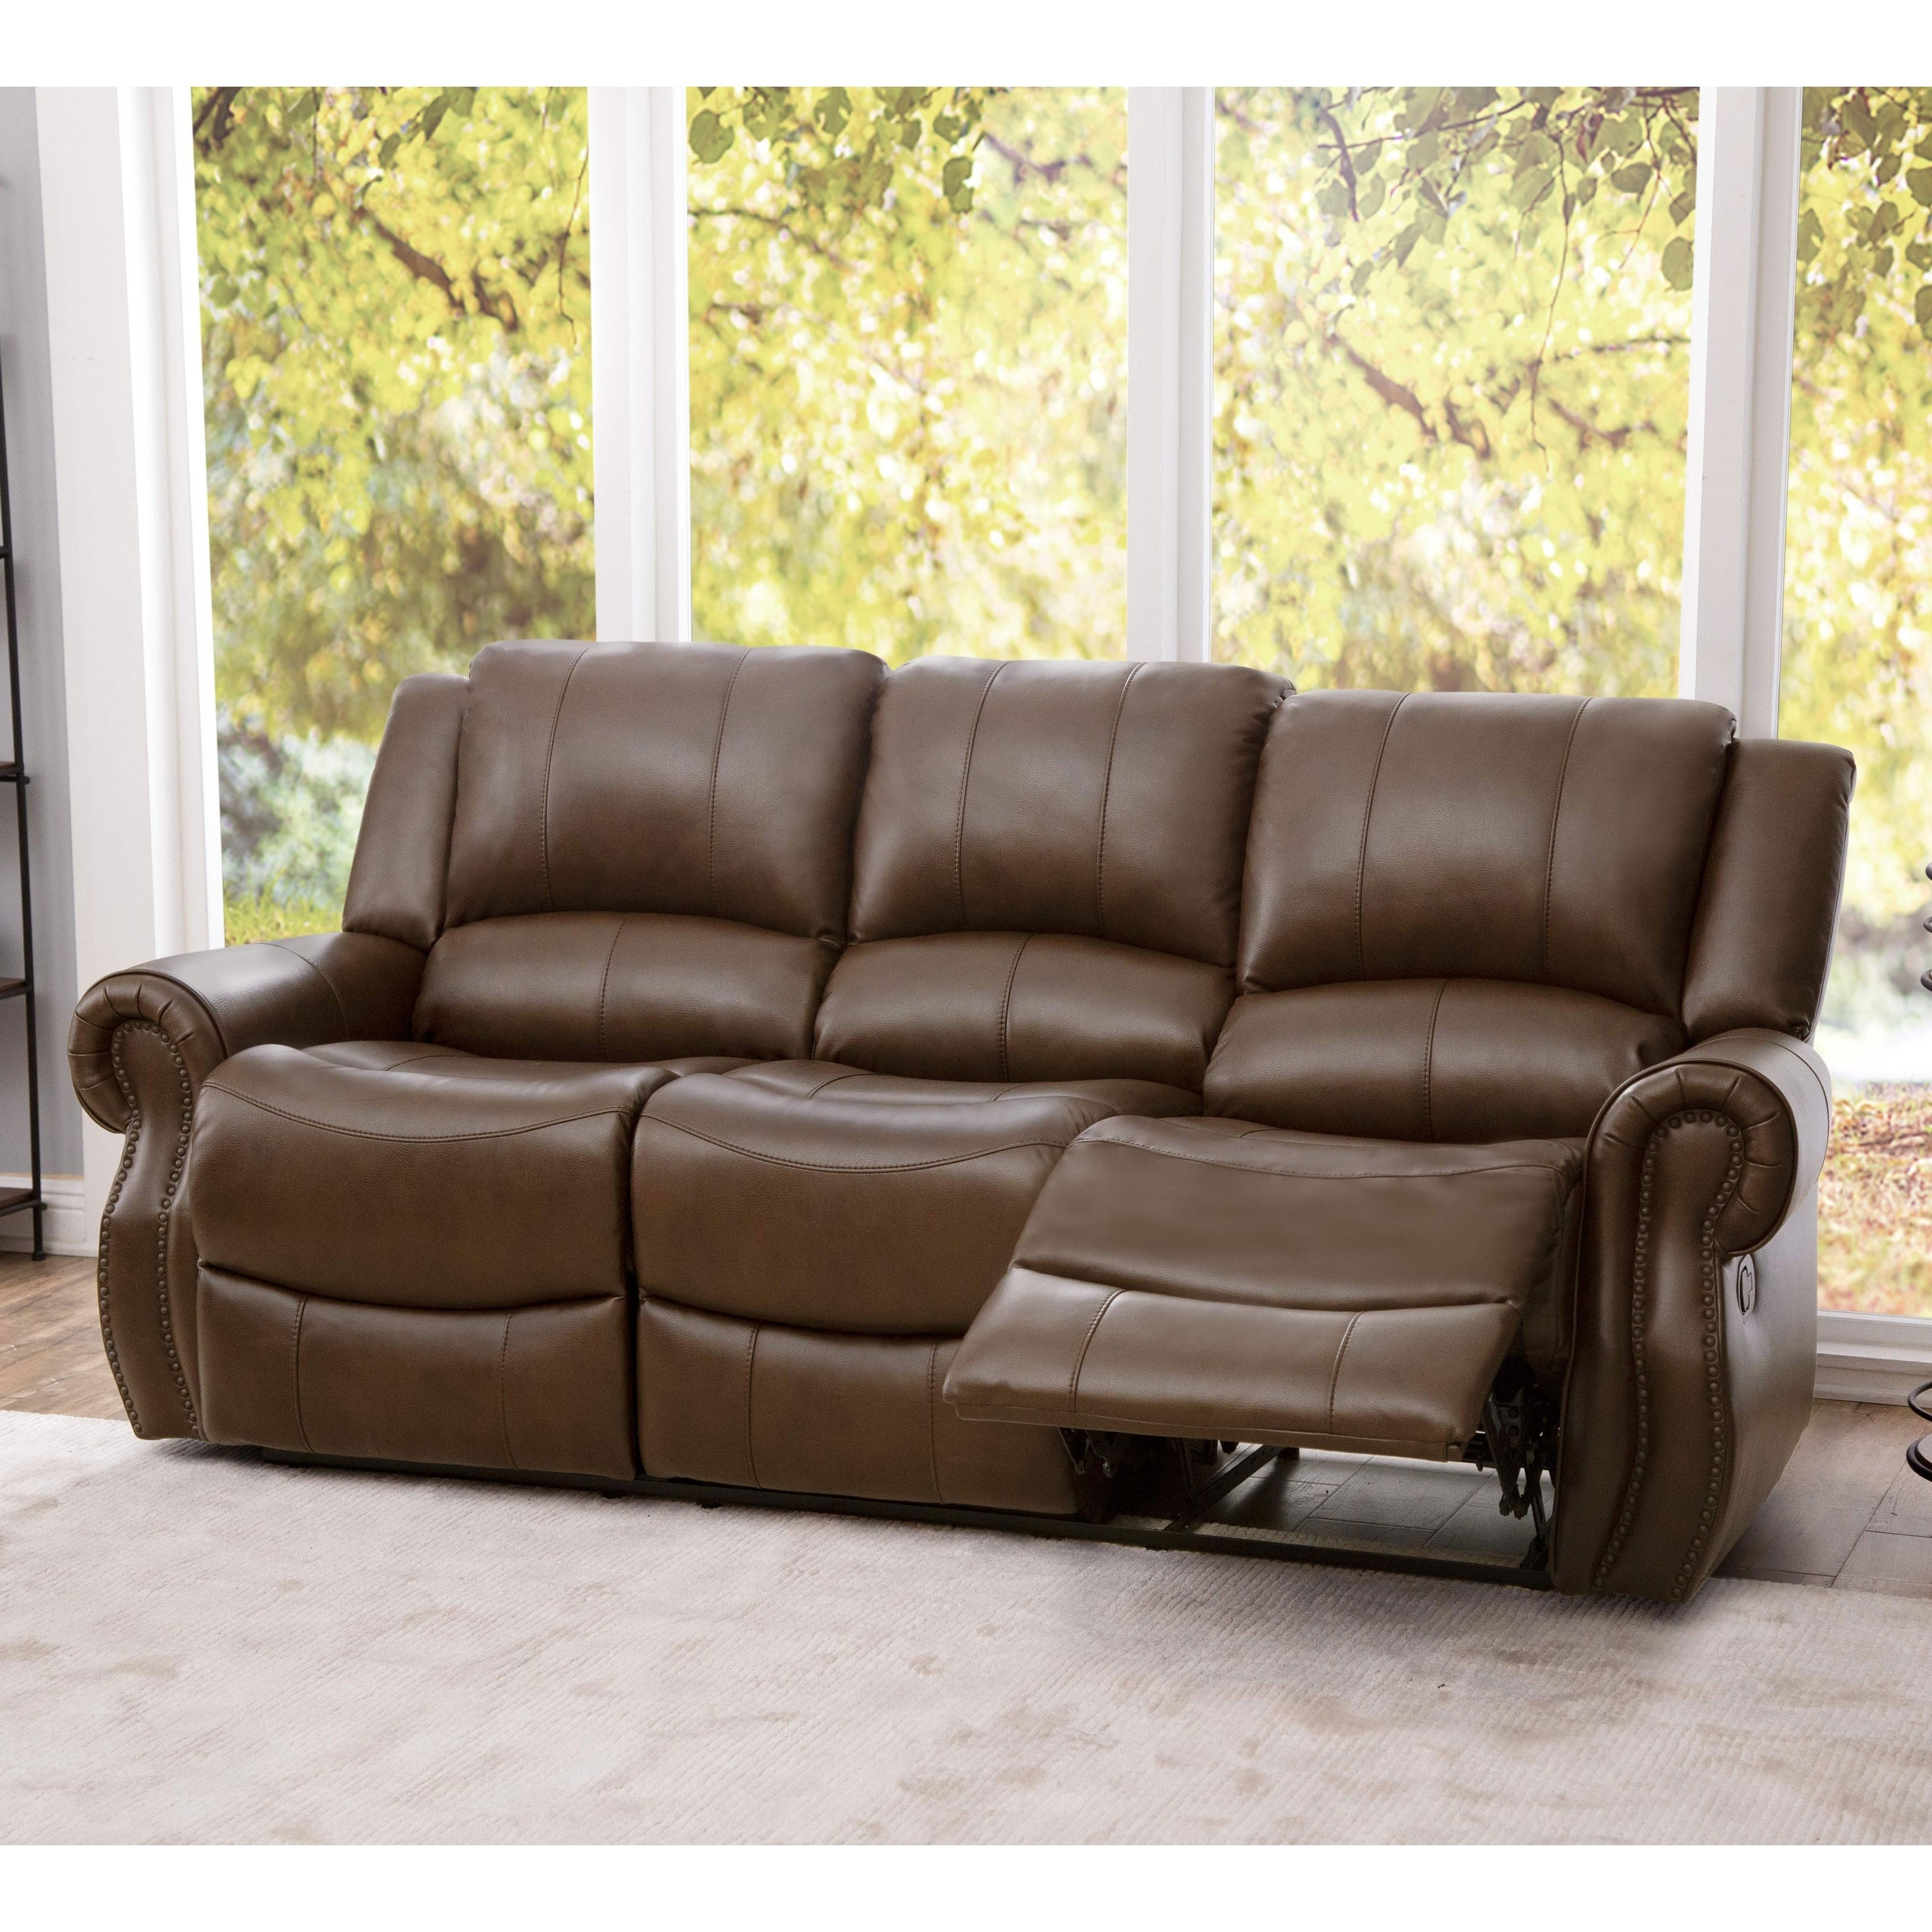 Shop Abbyson Calabasas Mesa Brown Leather Reclining Sofa – On Sale Pertaining To Mesa Foam Oversized Sofa Chairs (View 11 of 20)